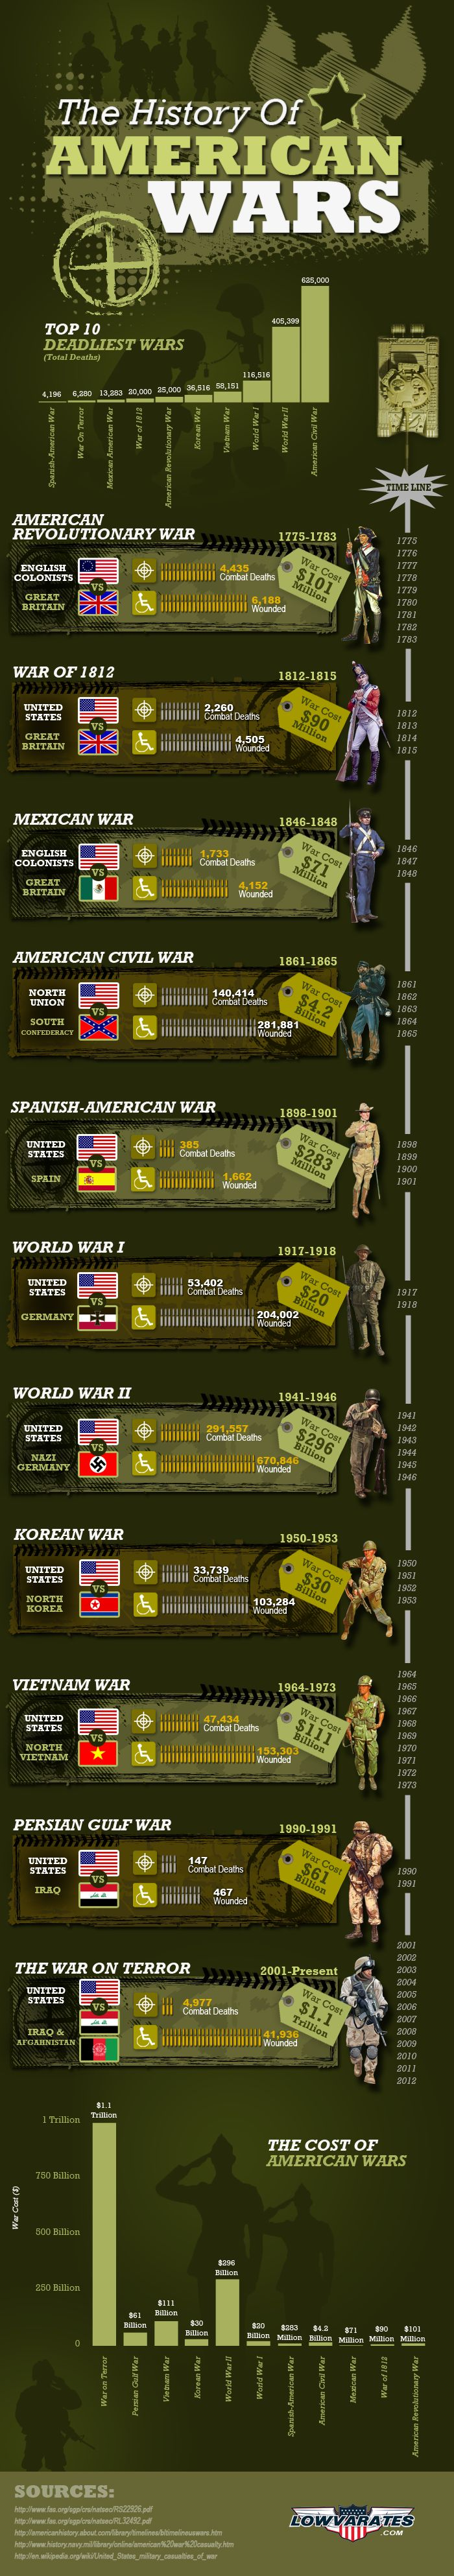 The History of American Wars